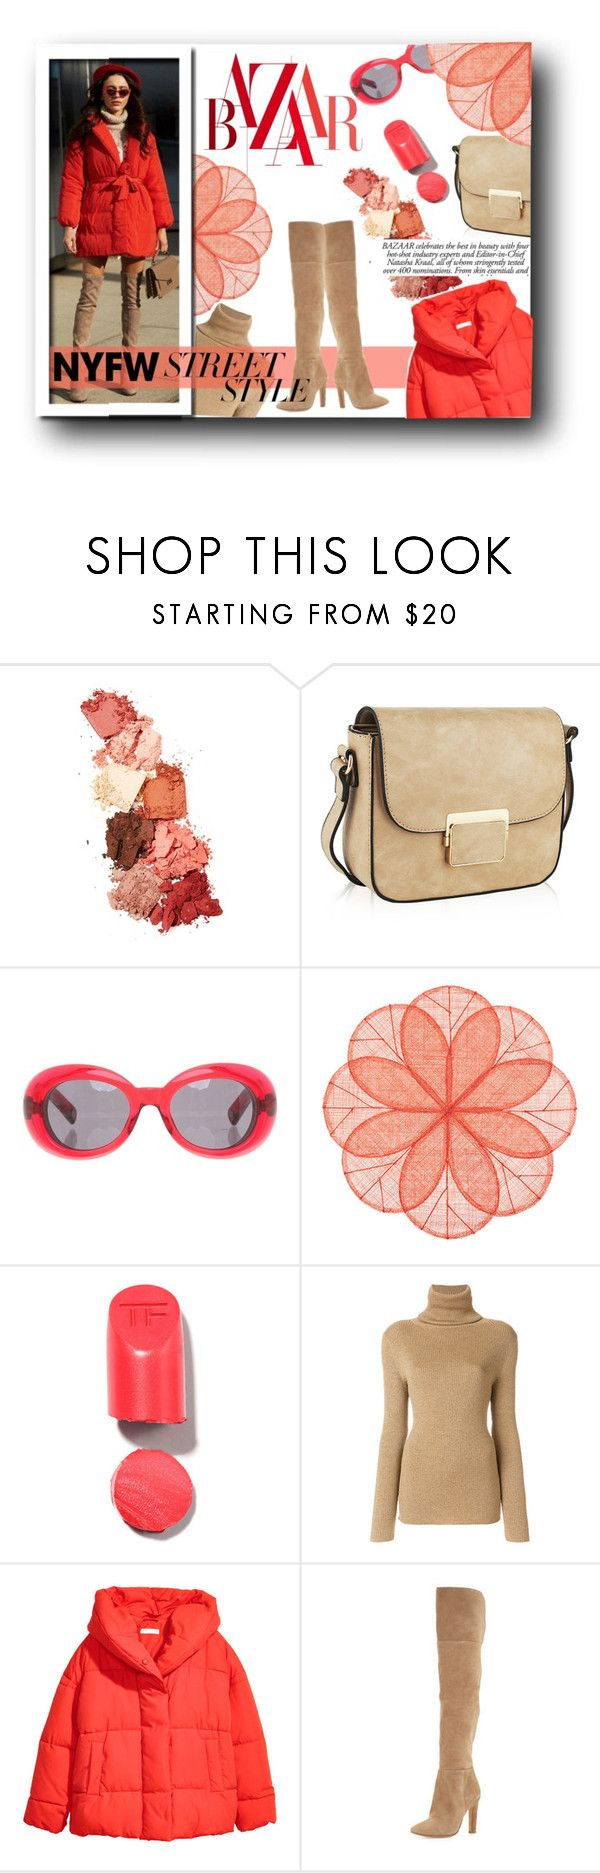 """""""NYFW : Street Style - Peach"""" by atikazahra on Polyvore featuring Lime Crime, MKF Collection, Marc Jacobs, Deborah Rhodes, Vanessa Seward, H&M, Joie, contestentry and nyfwstreetstyle"""